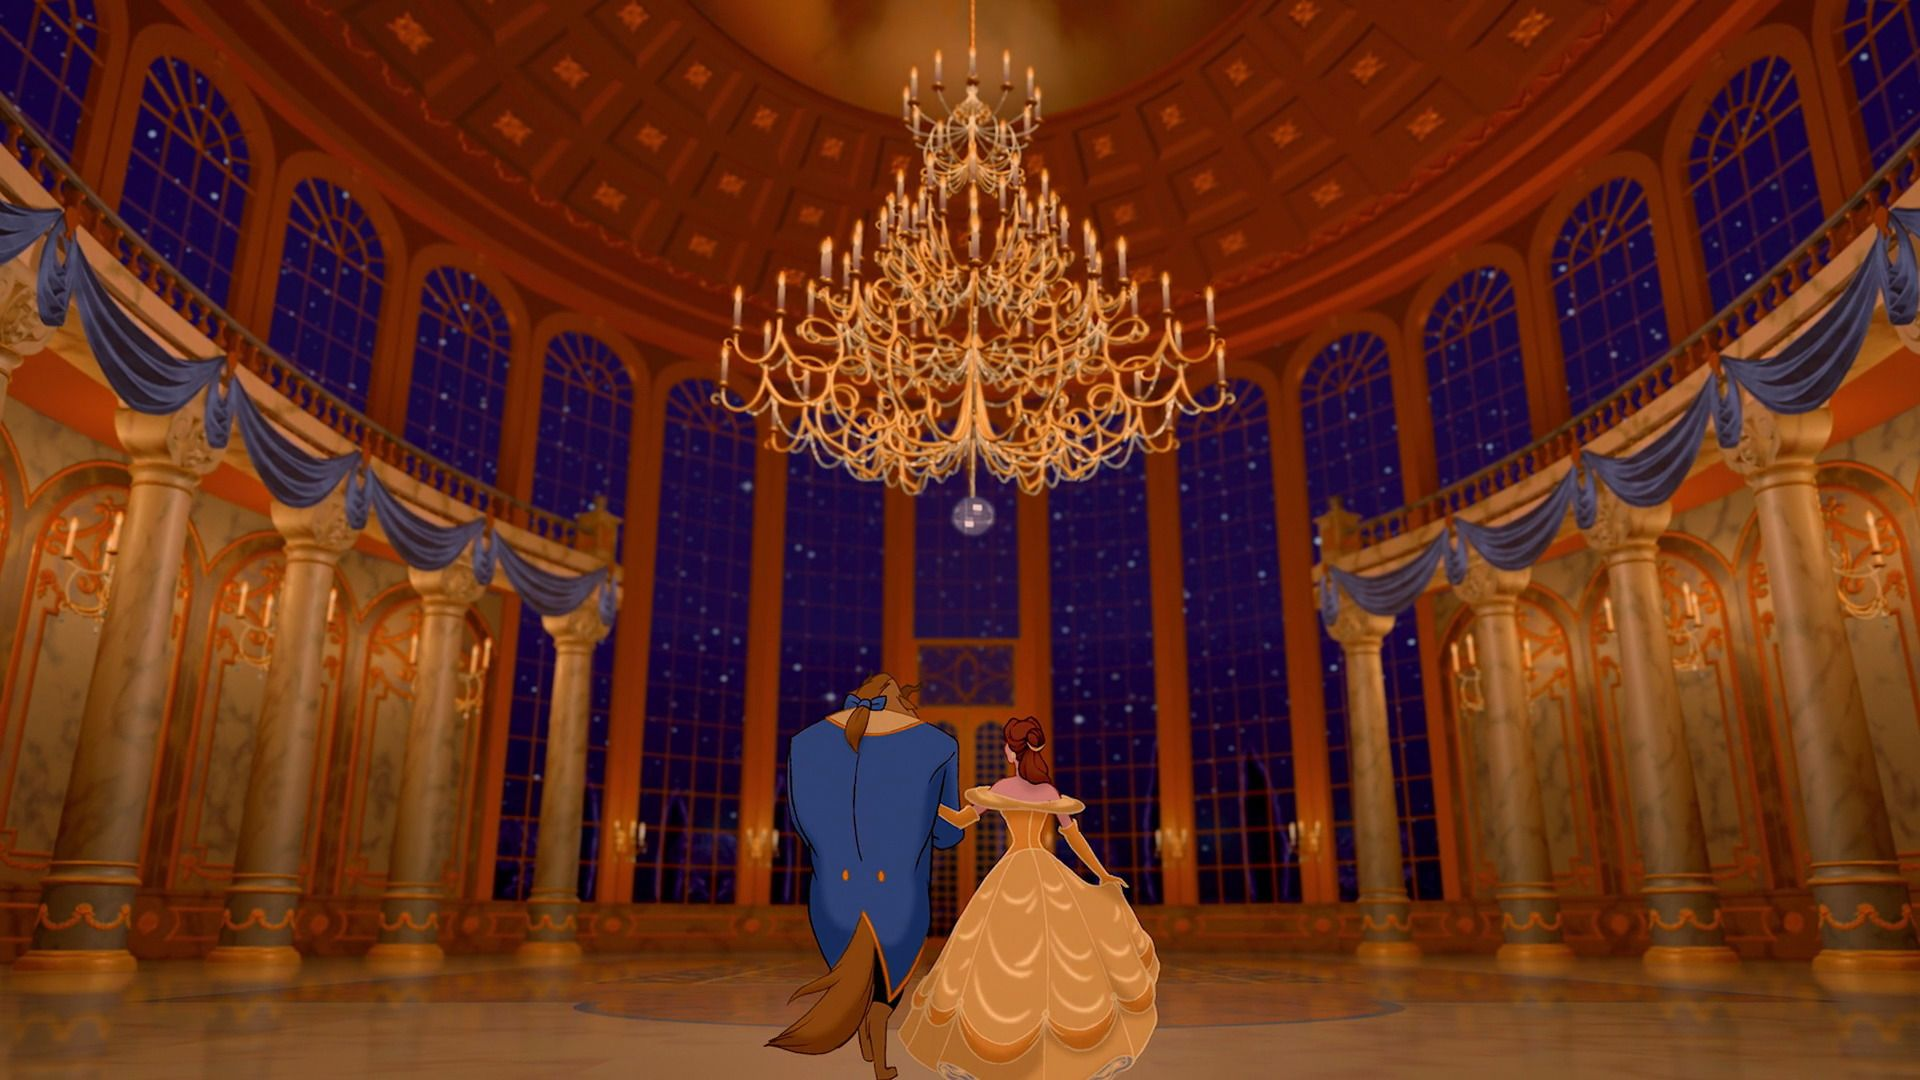 The Ballroom With Images Disney Beauty And The Beast Beauty